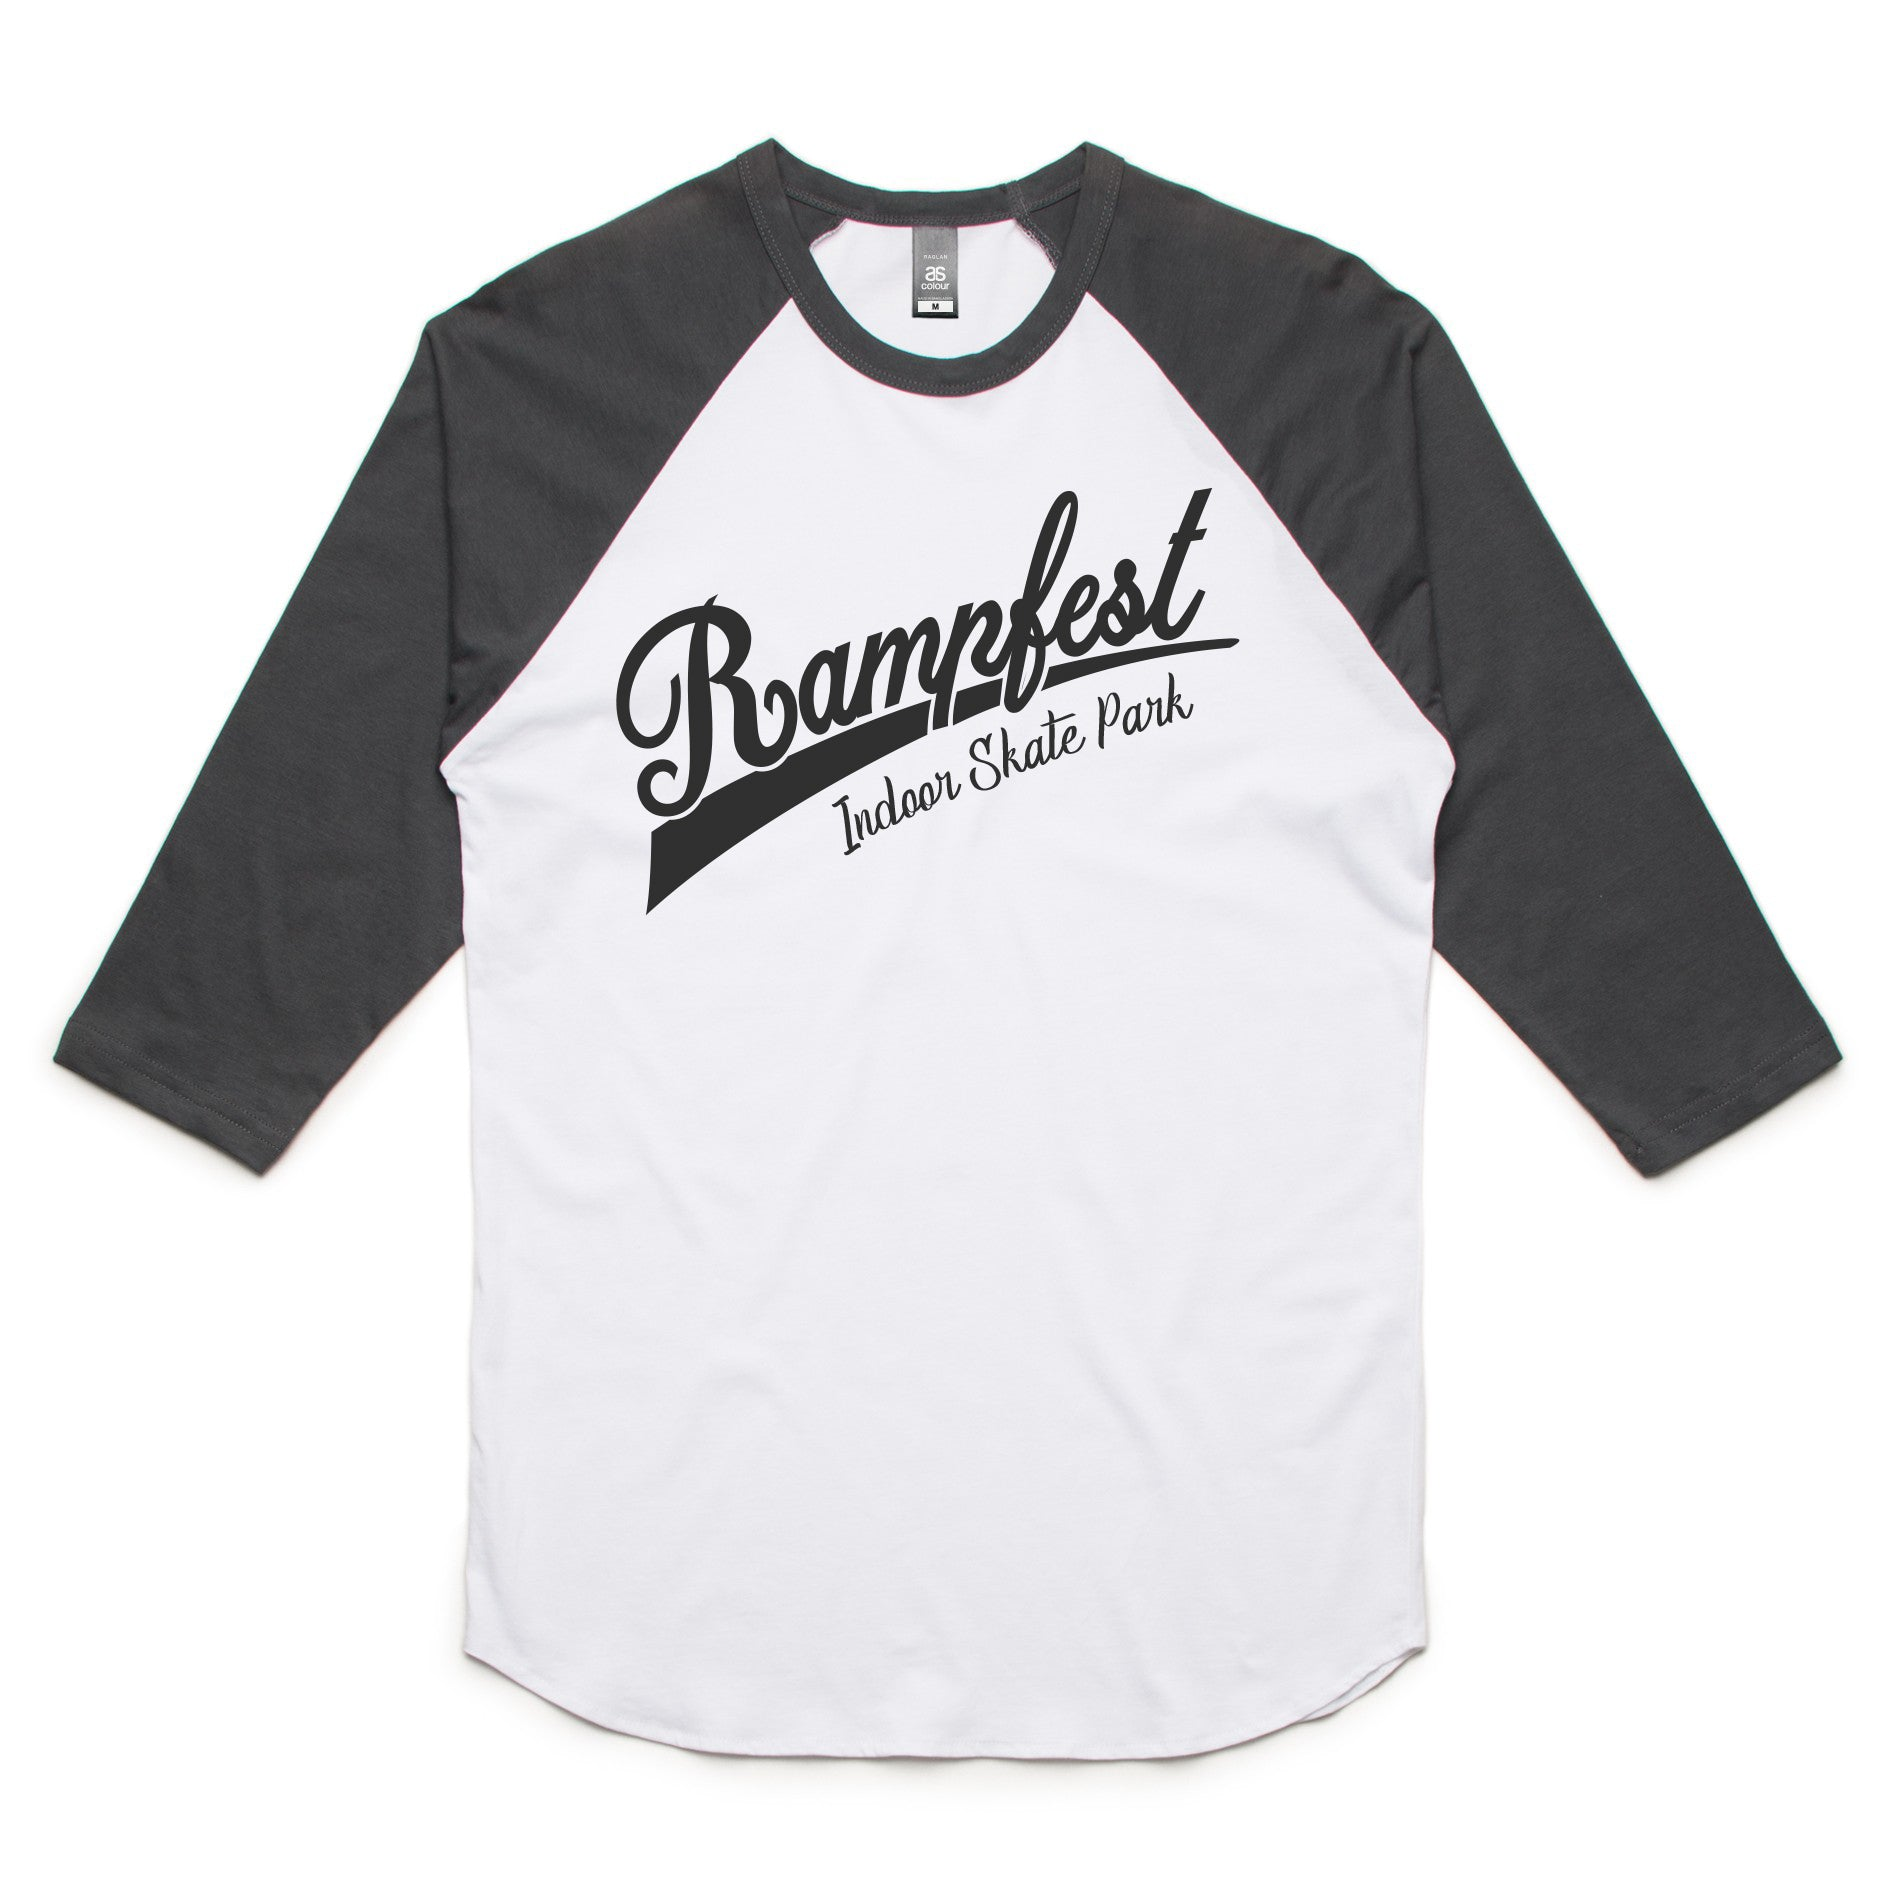 Rampfest 10 Year Baseball 3/4 Tee - Charcoal/Black